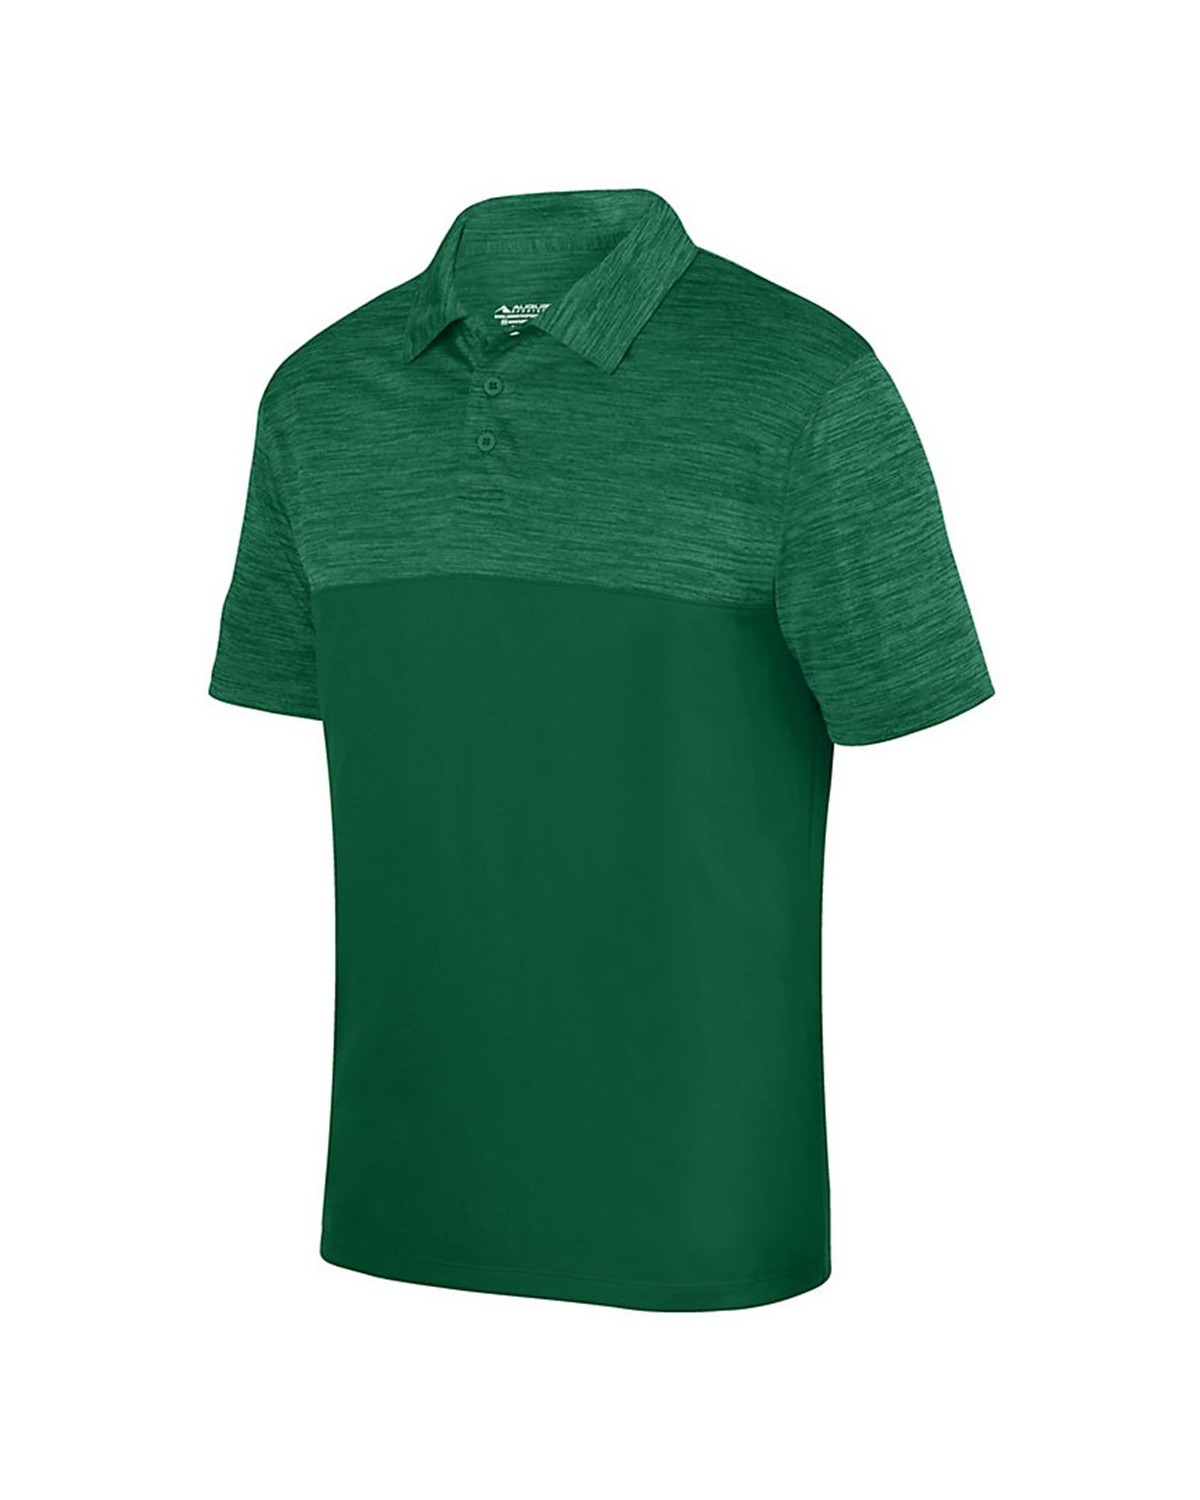 NL3650 Next Level Apparel Forest Green/Natural